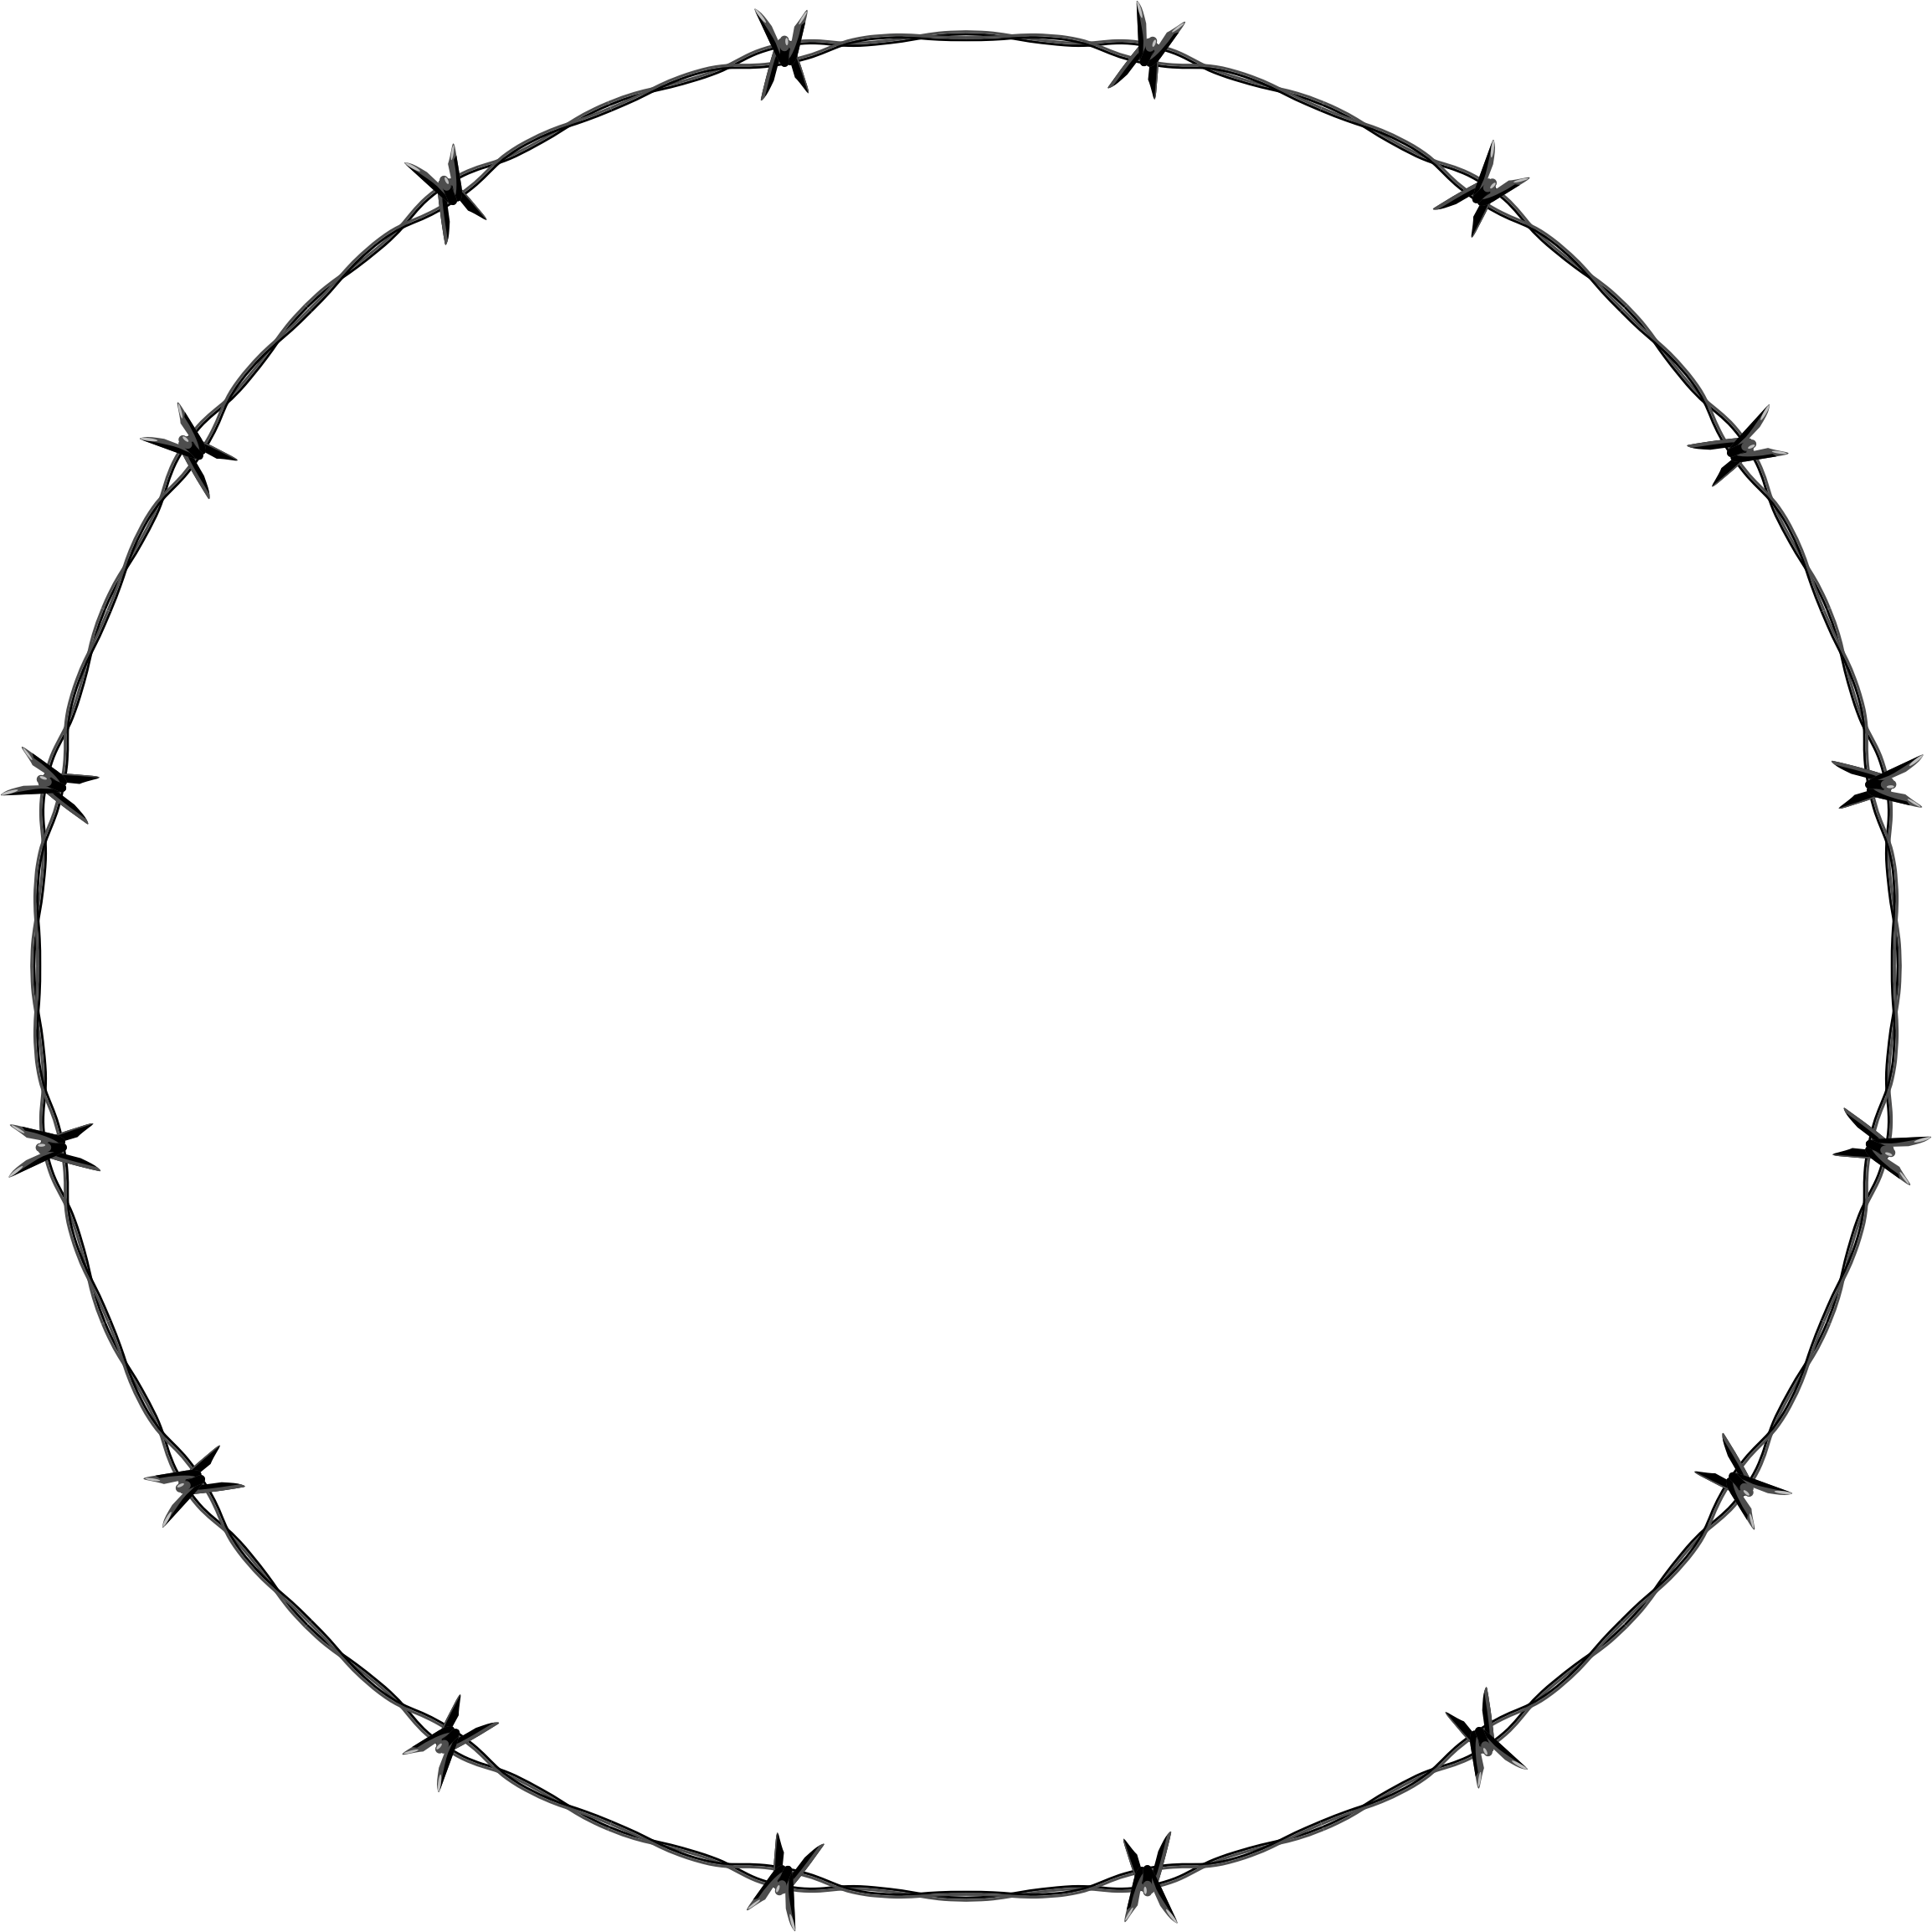 Barb Wire clipart circle #2